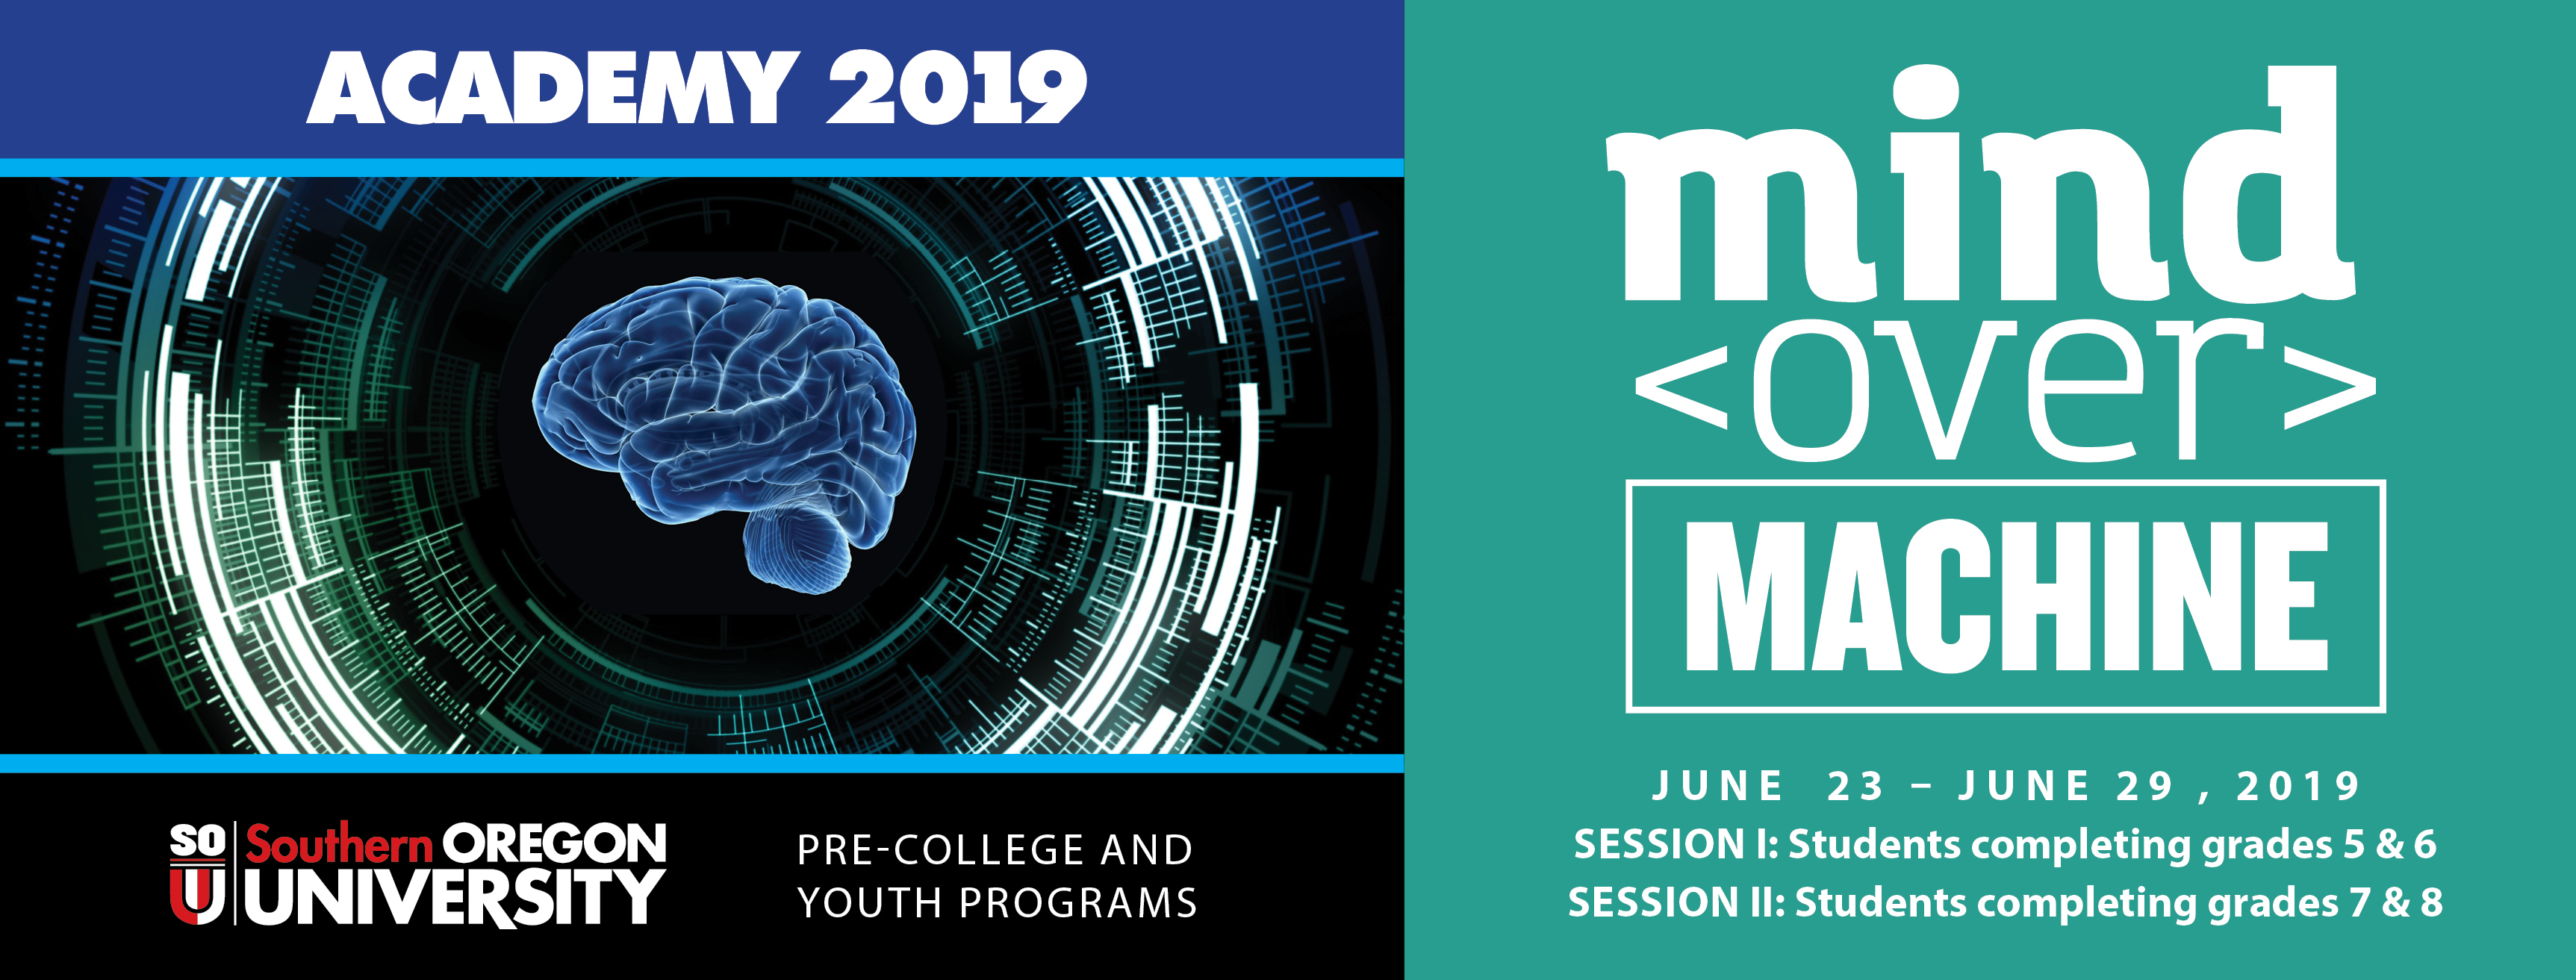 Academy 2019 Theme: Mind Over Machine June 23-June 29, 2019